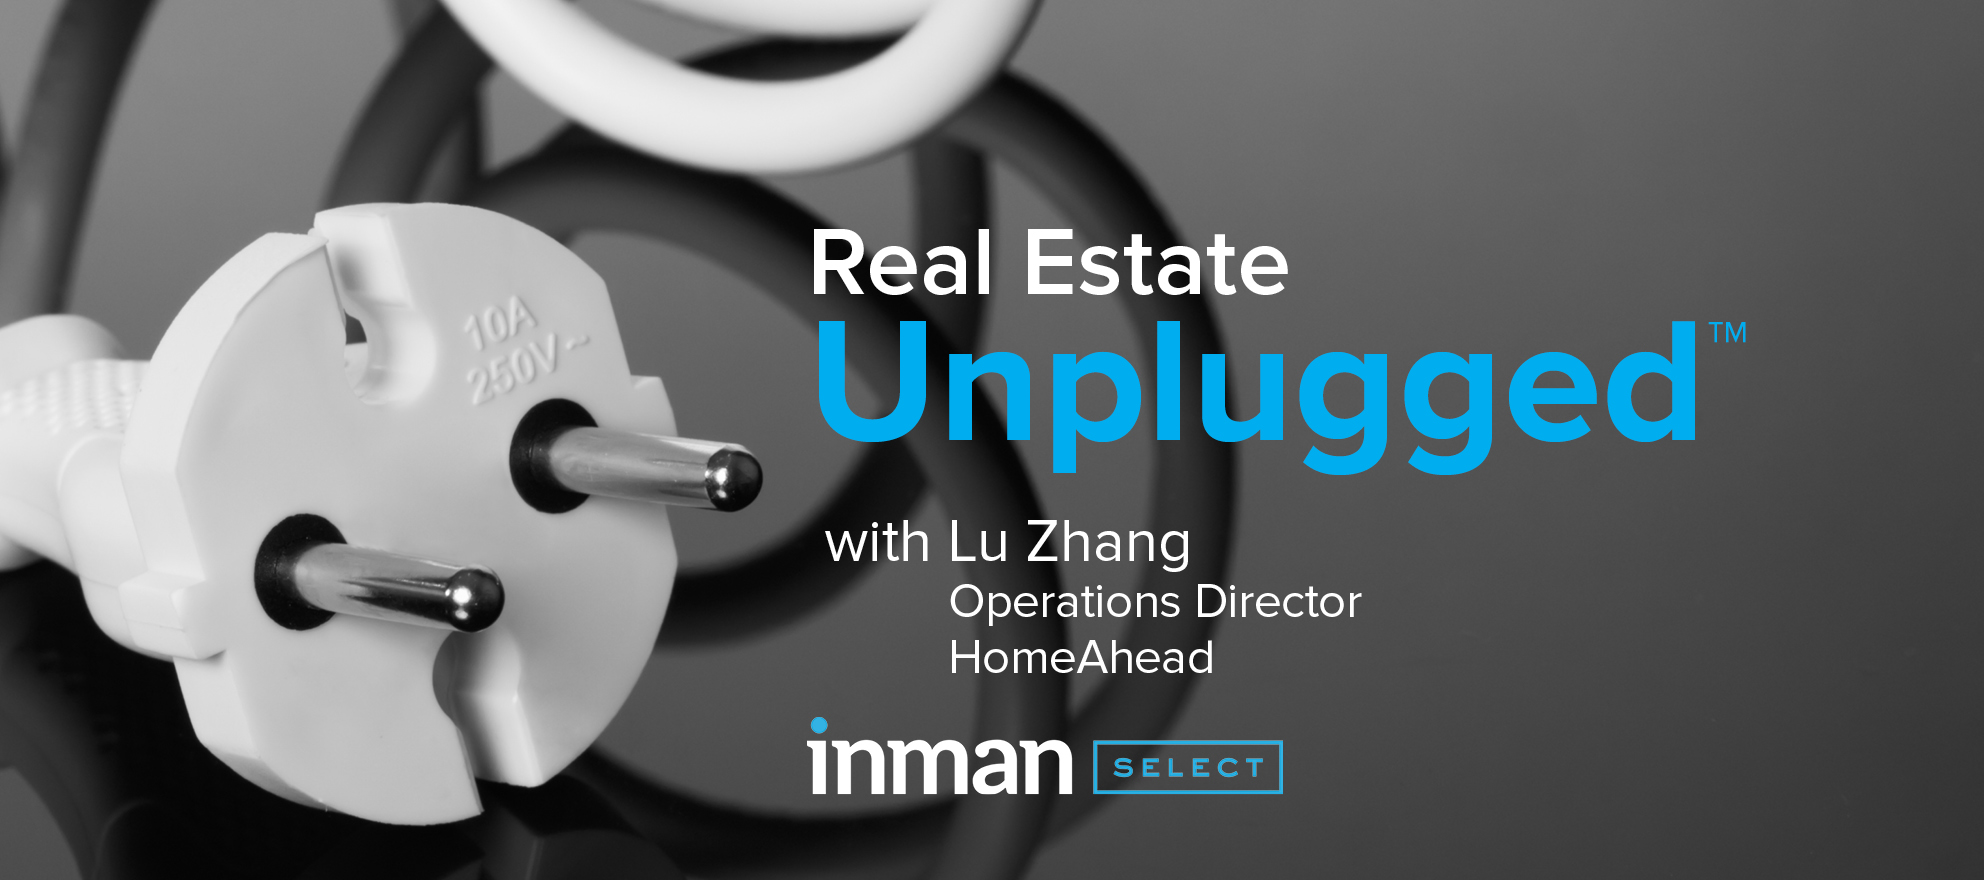 Lu Zhang on the benefits of curiosity and being open and respectful with new hires